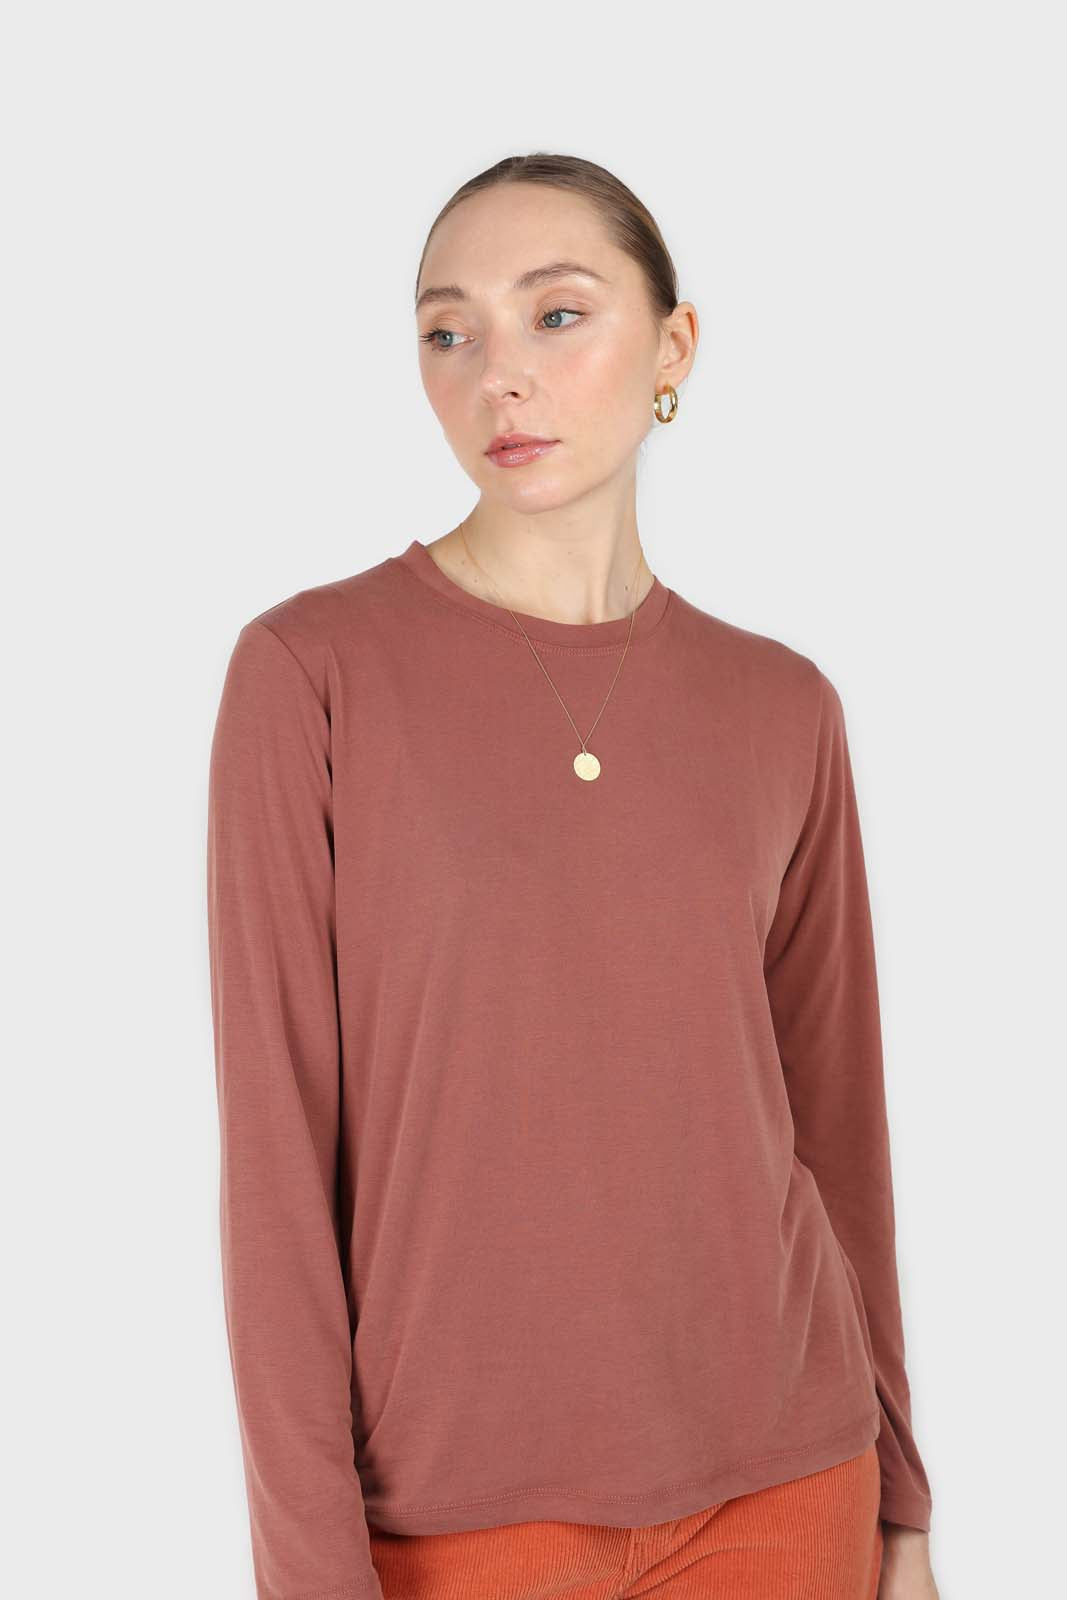 Rust high neck perfect long sleeved tee1sx